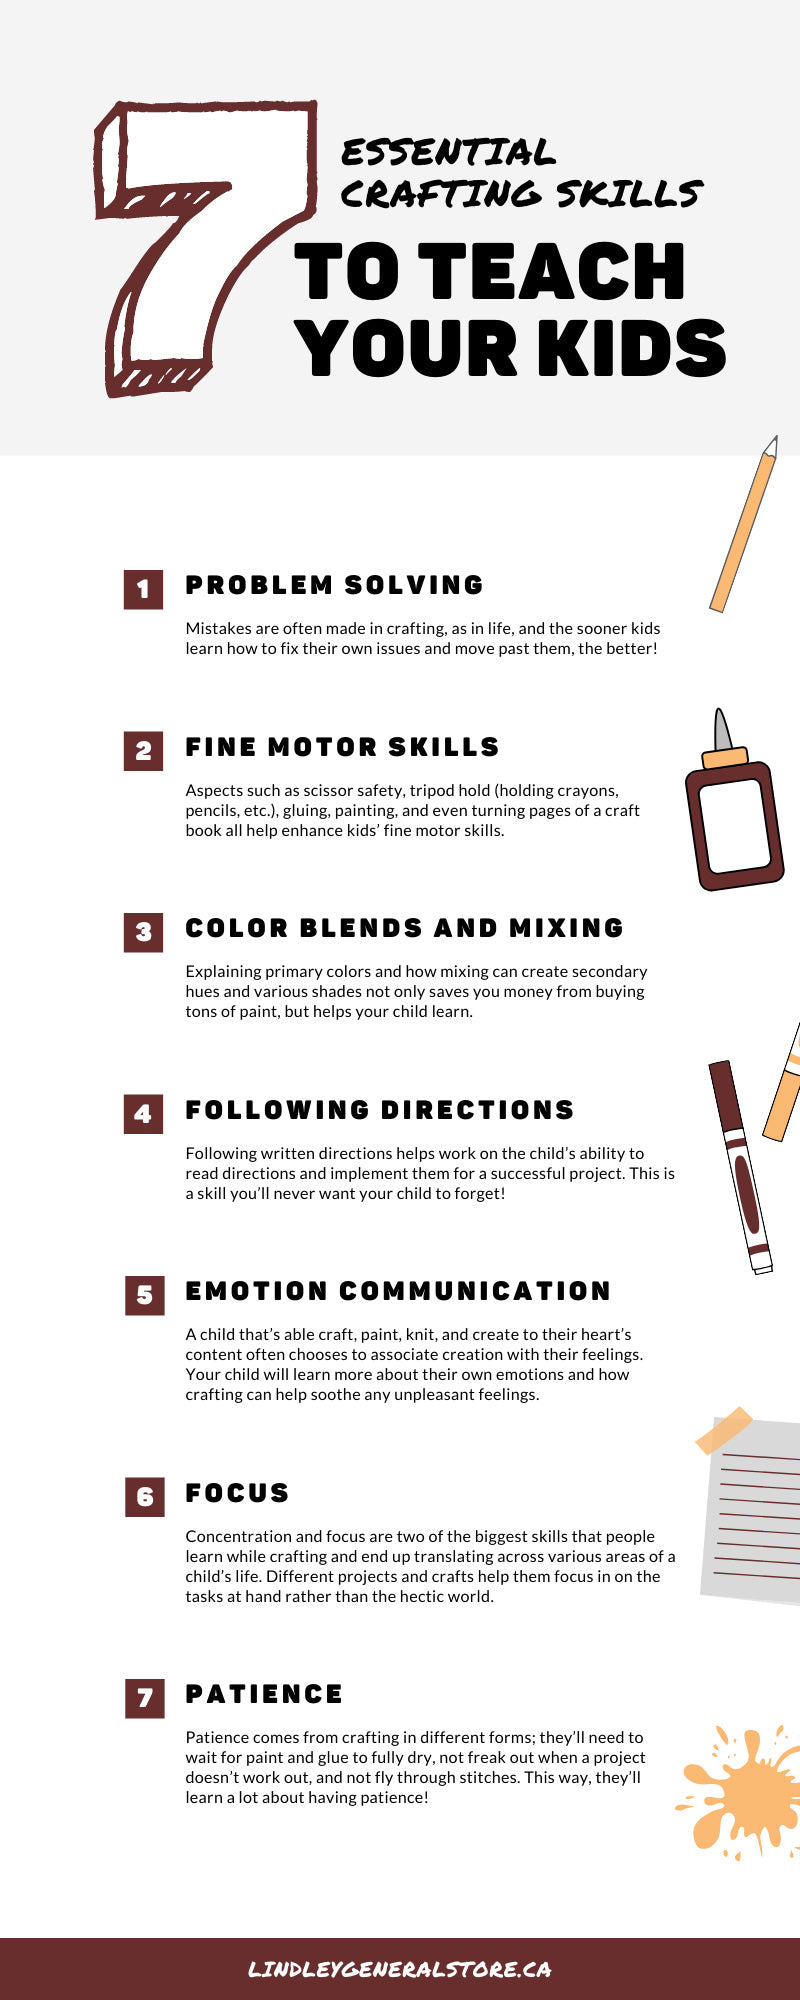 Skills to Teach Your Kids